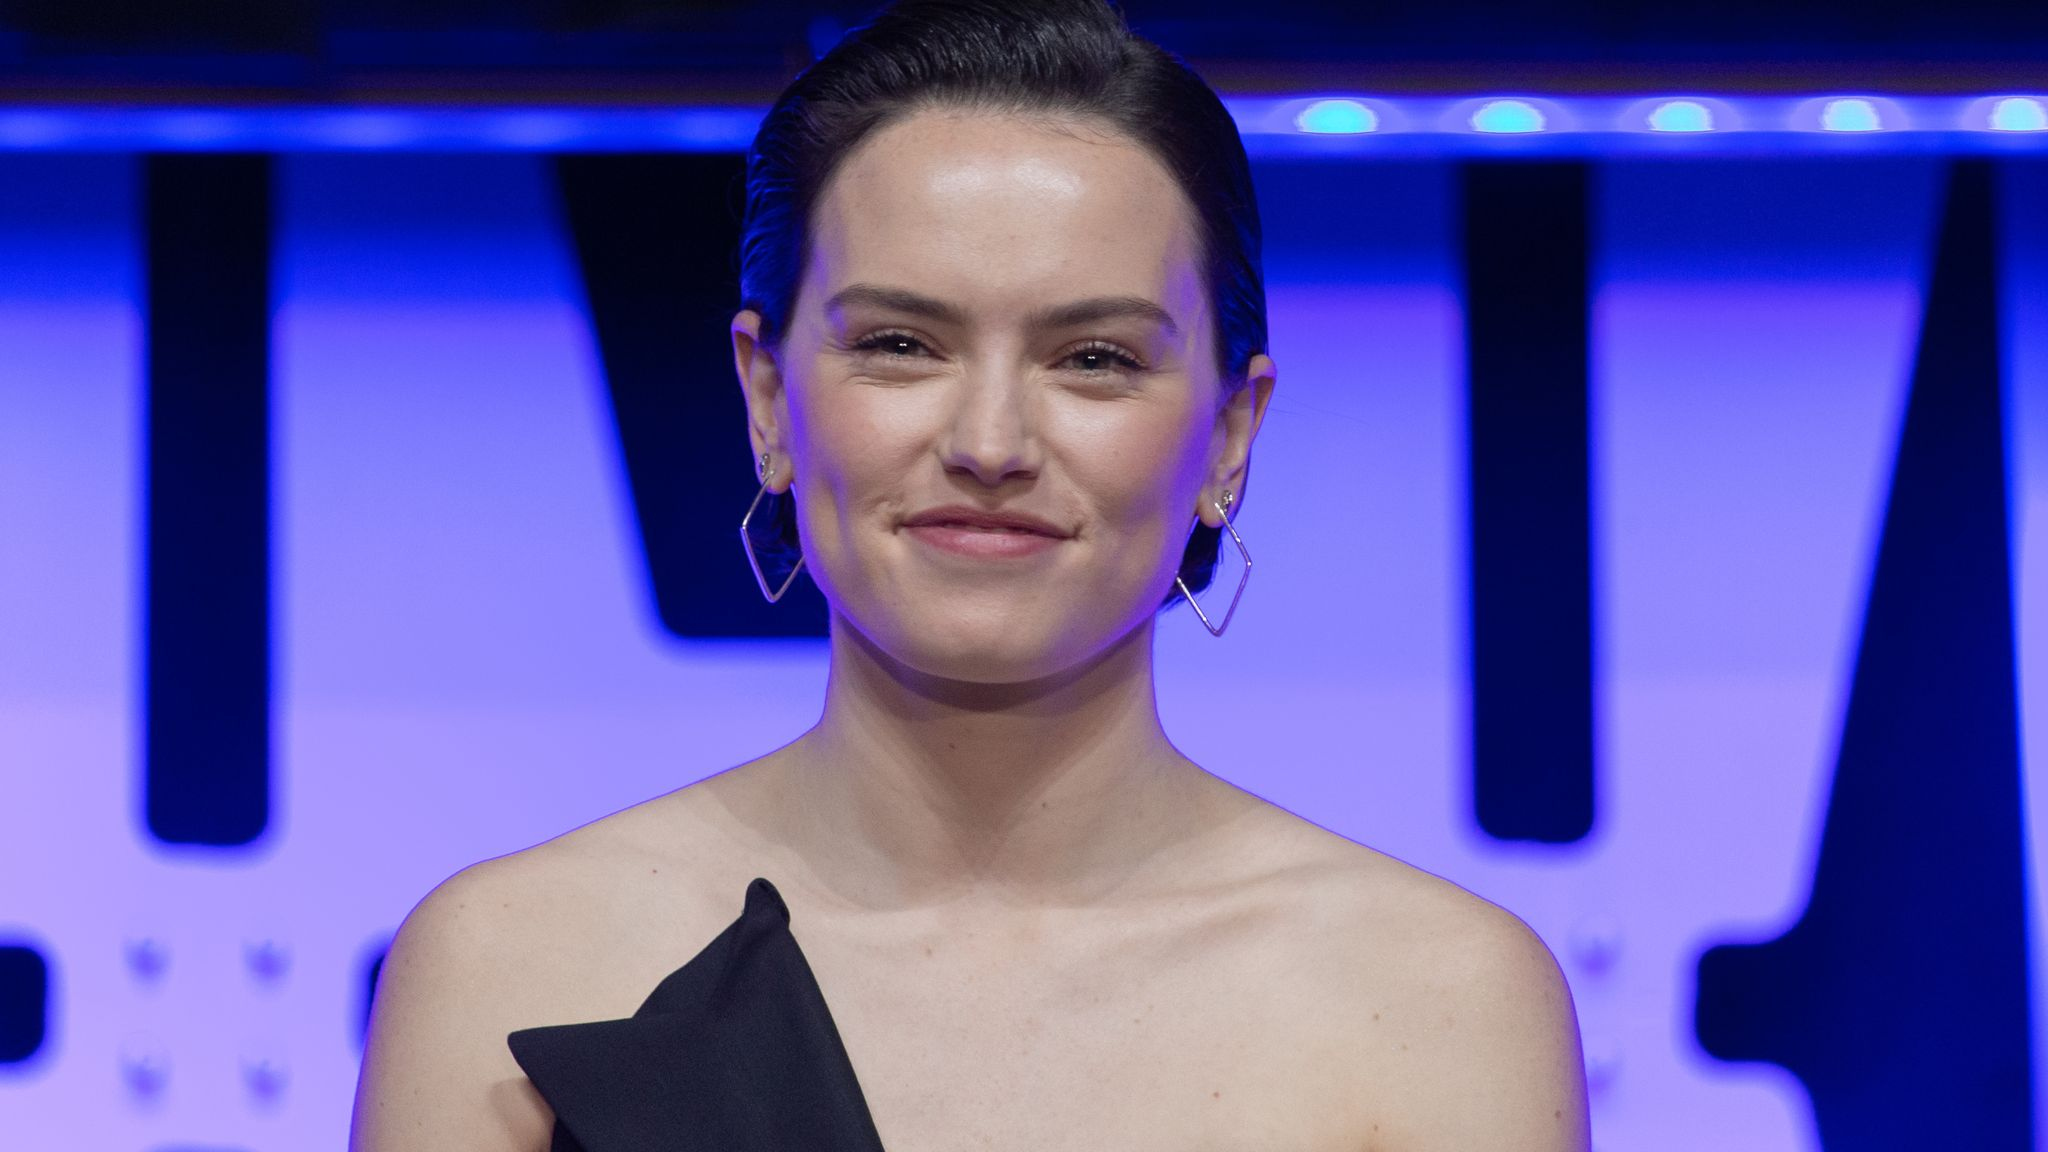 Star Wars actress Daisy Ridley criticised for 'denying privilege'